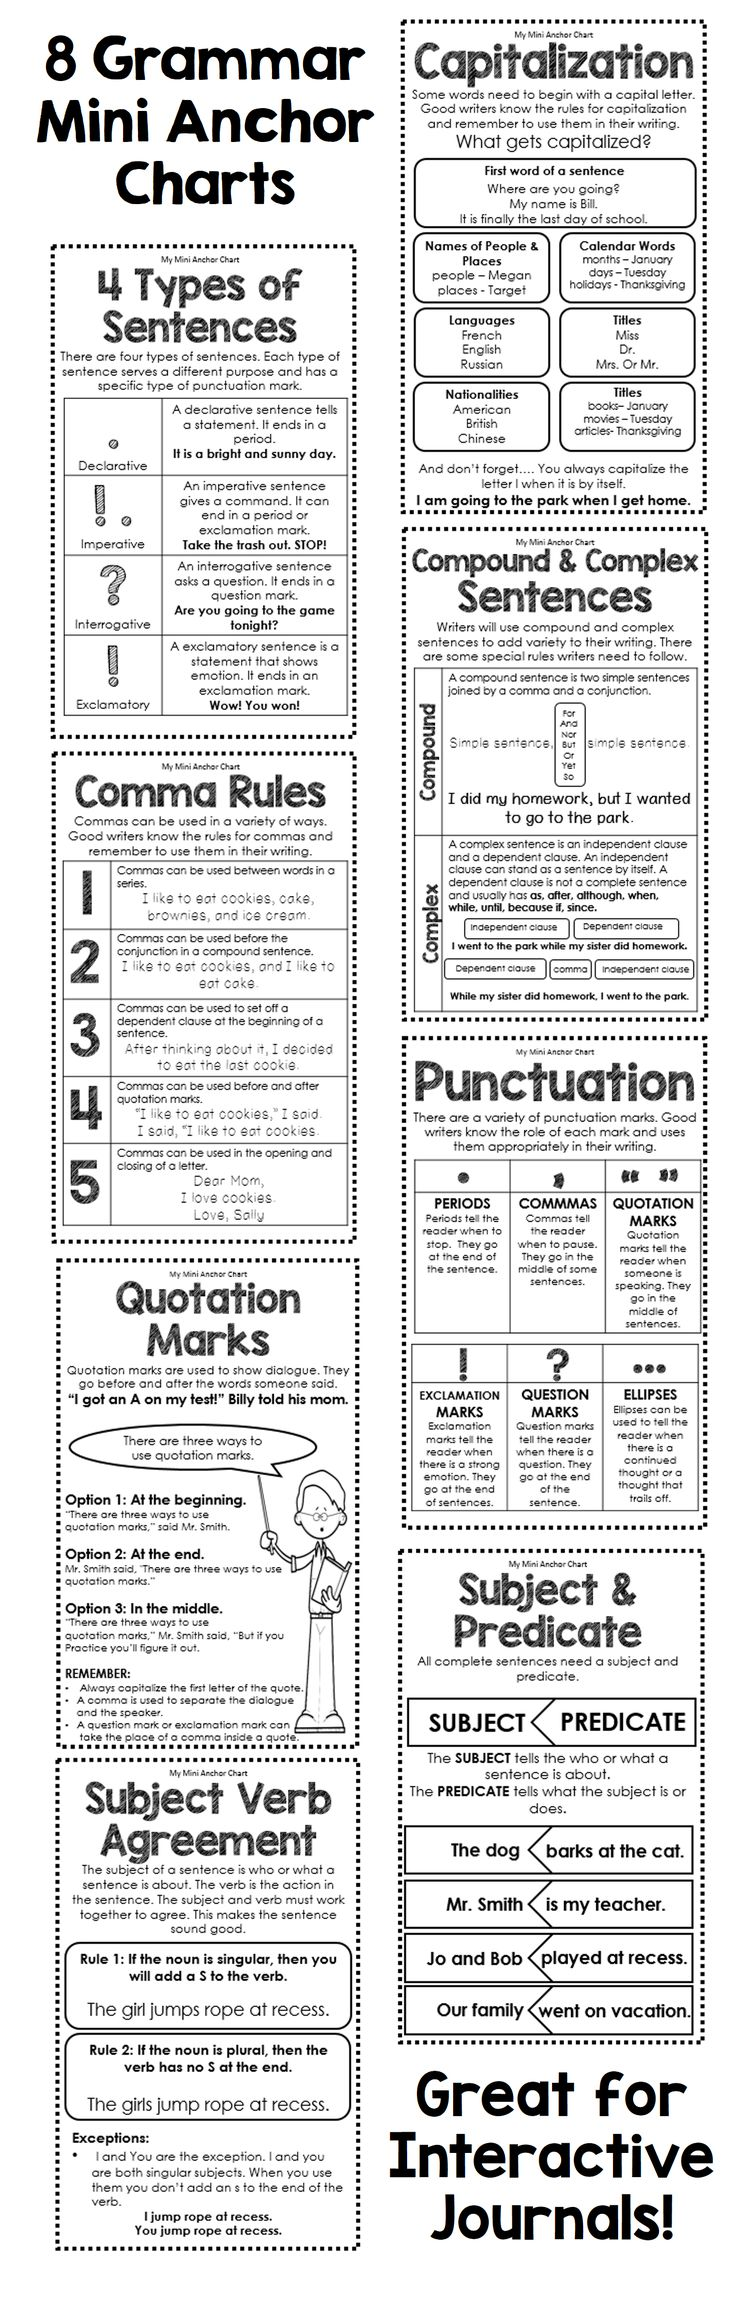 best ideas about quotation marks rules quotation get these 8 grammar mini anchor charts to glue in your students interactive writing journals